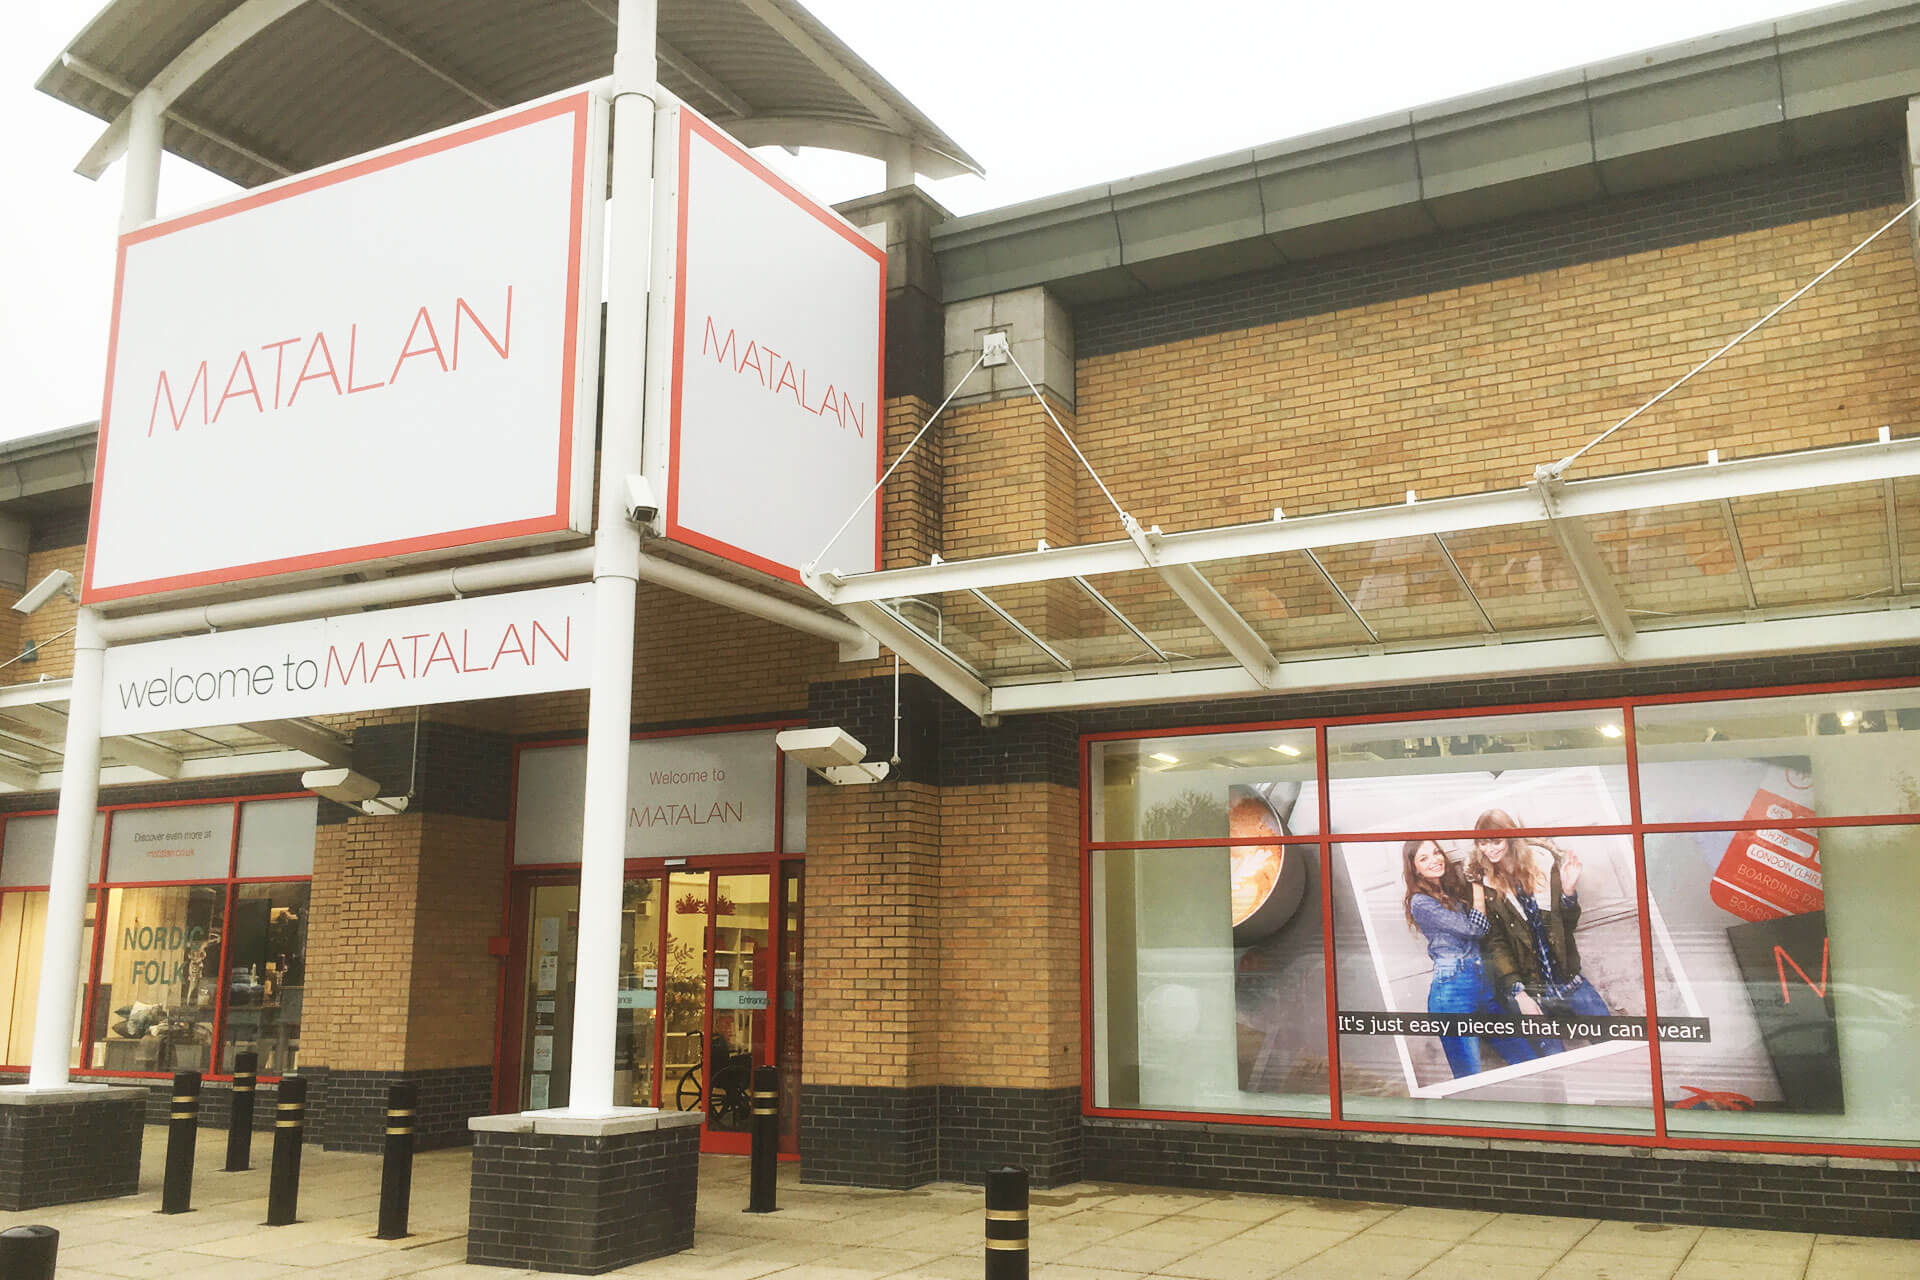 Eclipse Digital Media - Digital Signage Solutions - Matalan Indoor LED Wall - Outside